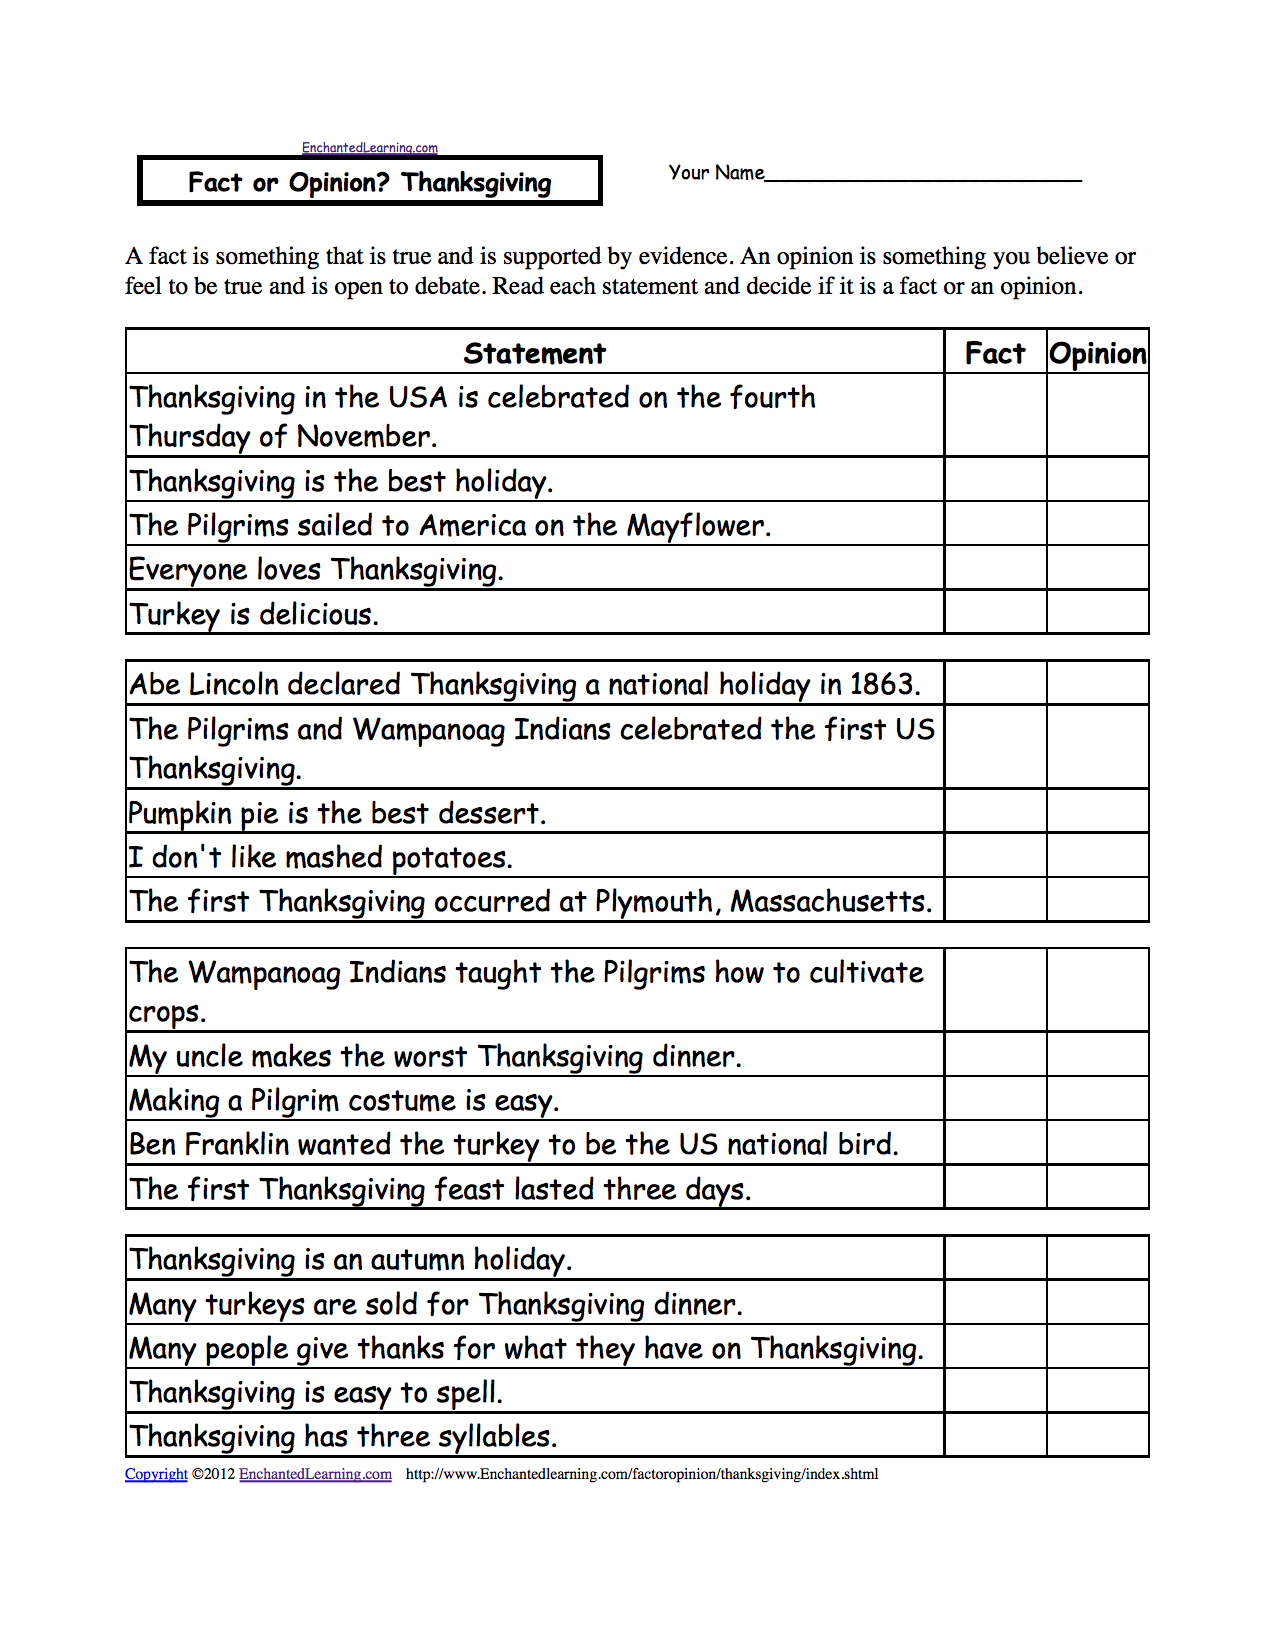 Worksheets Physical Geography Worksheets fact or opinion checkmark worksheets to print enchantedlearning com com